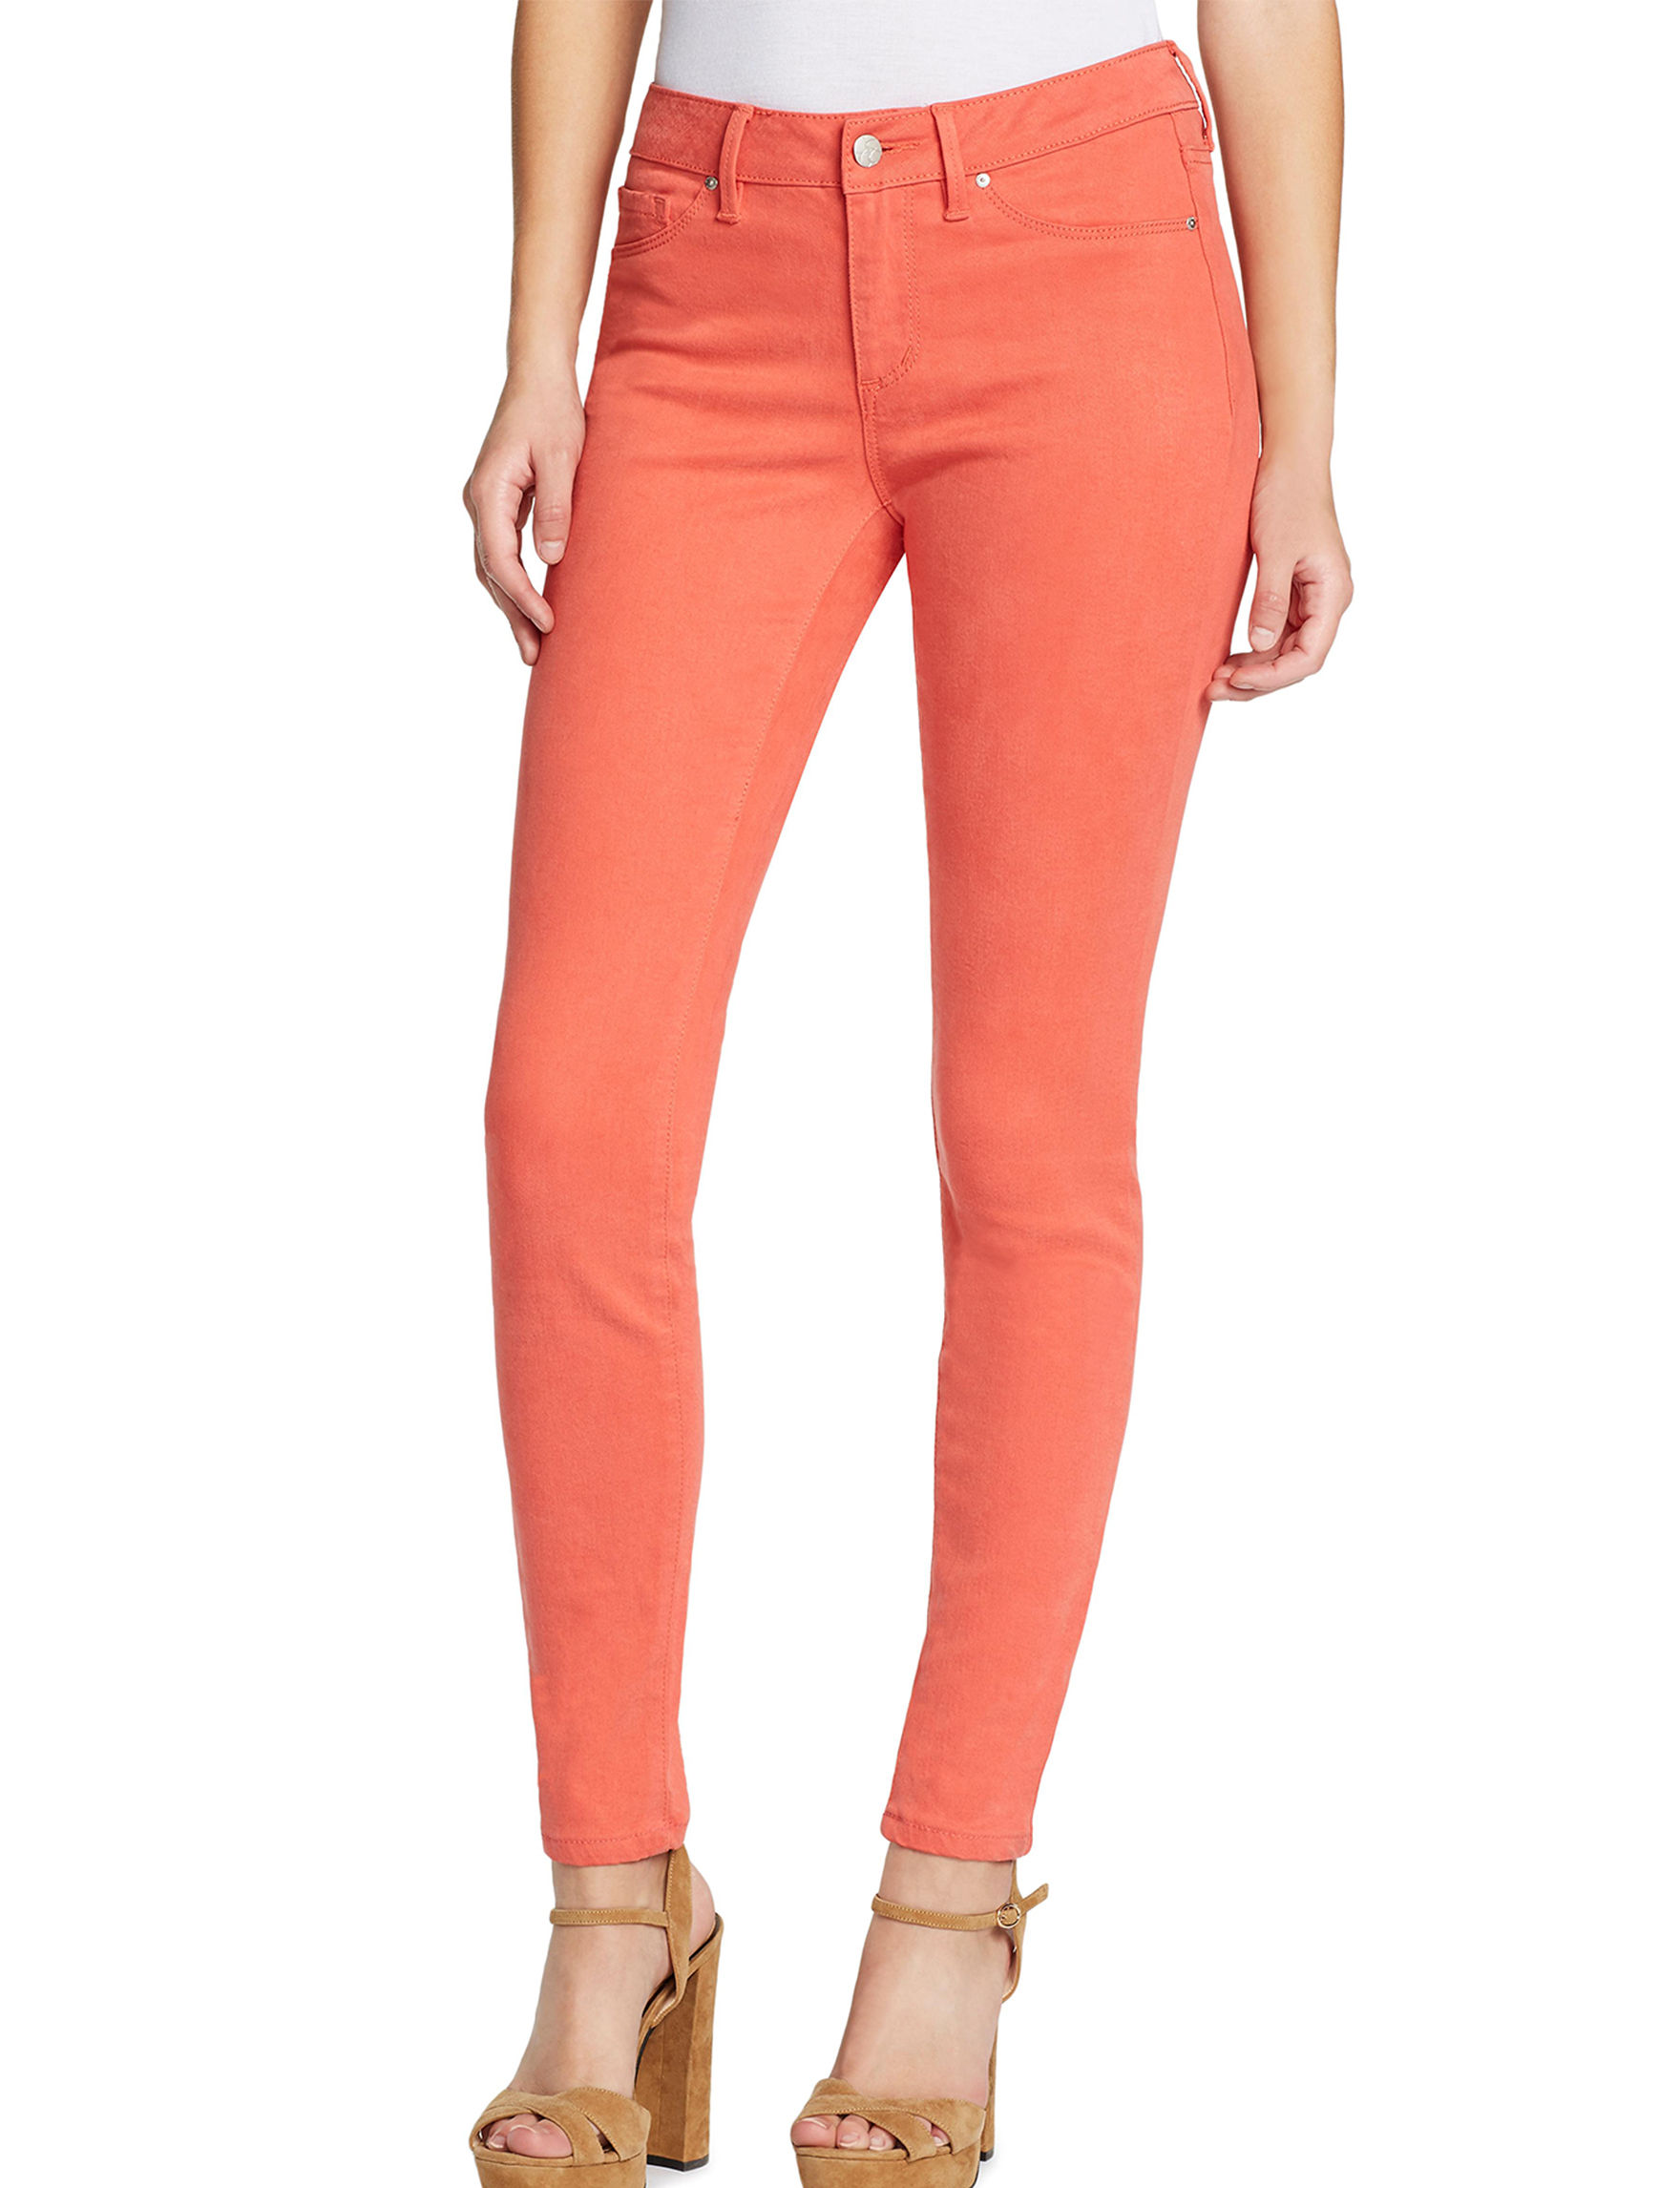 Jessica Simpson Orange Skinny